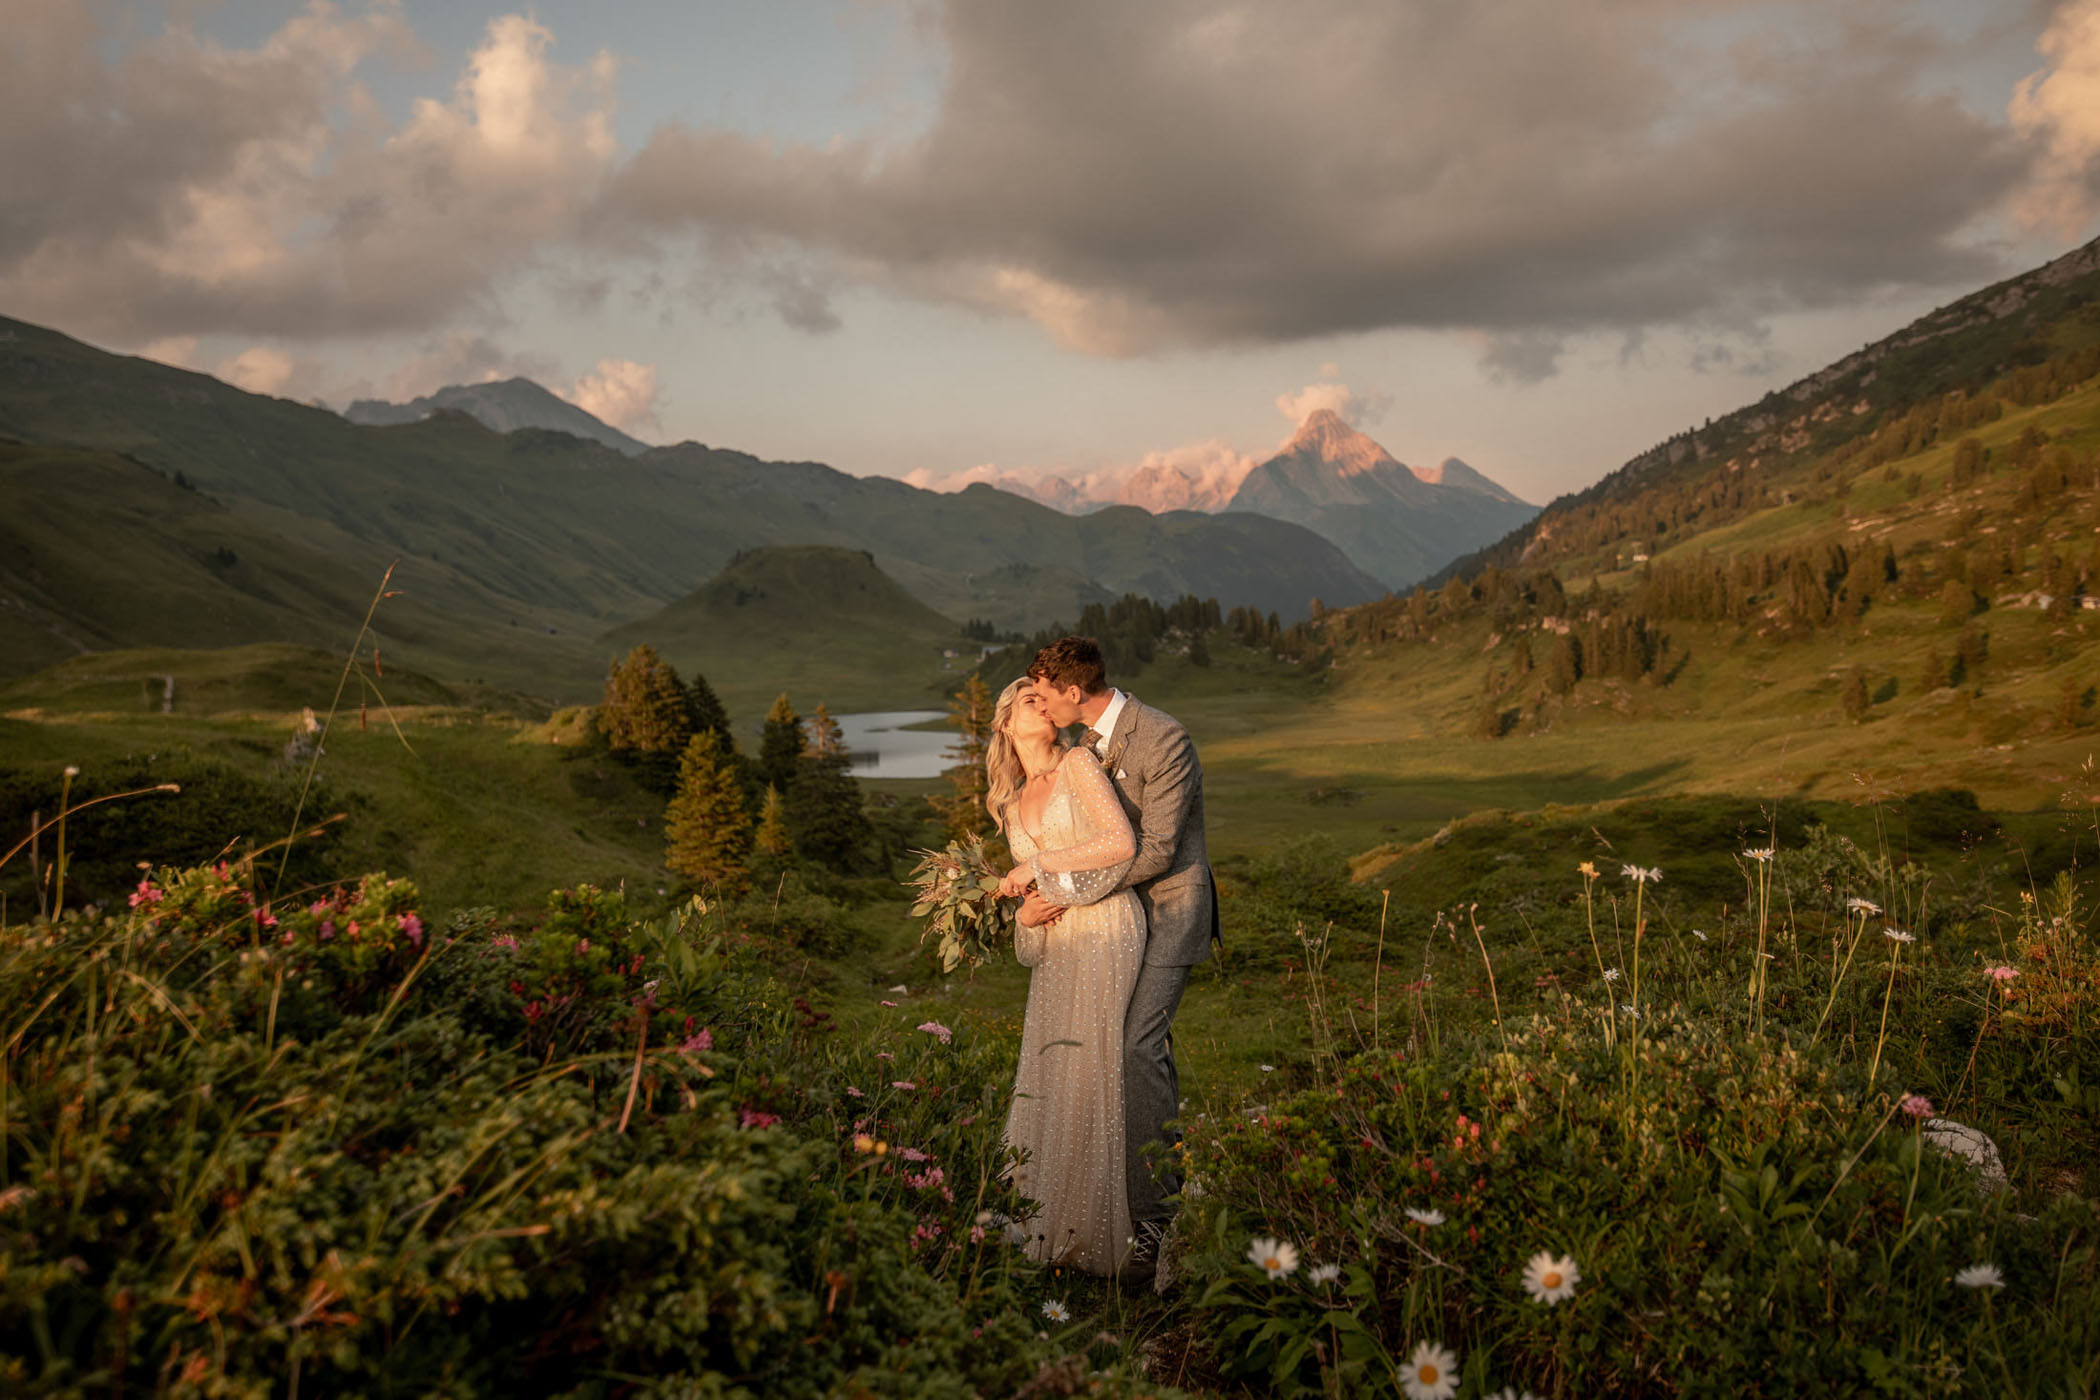 Husband and wife kissing in a wildlflower field